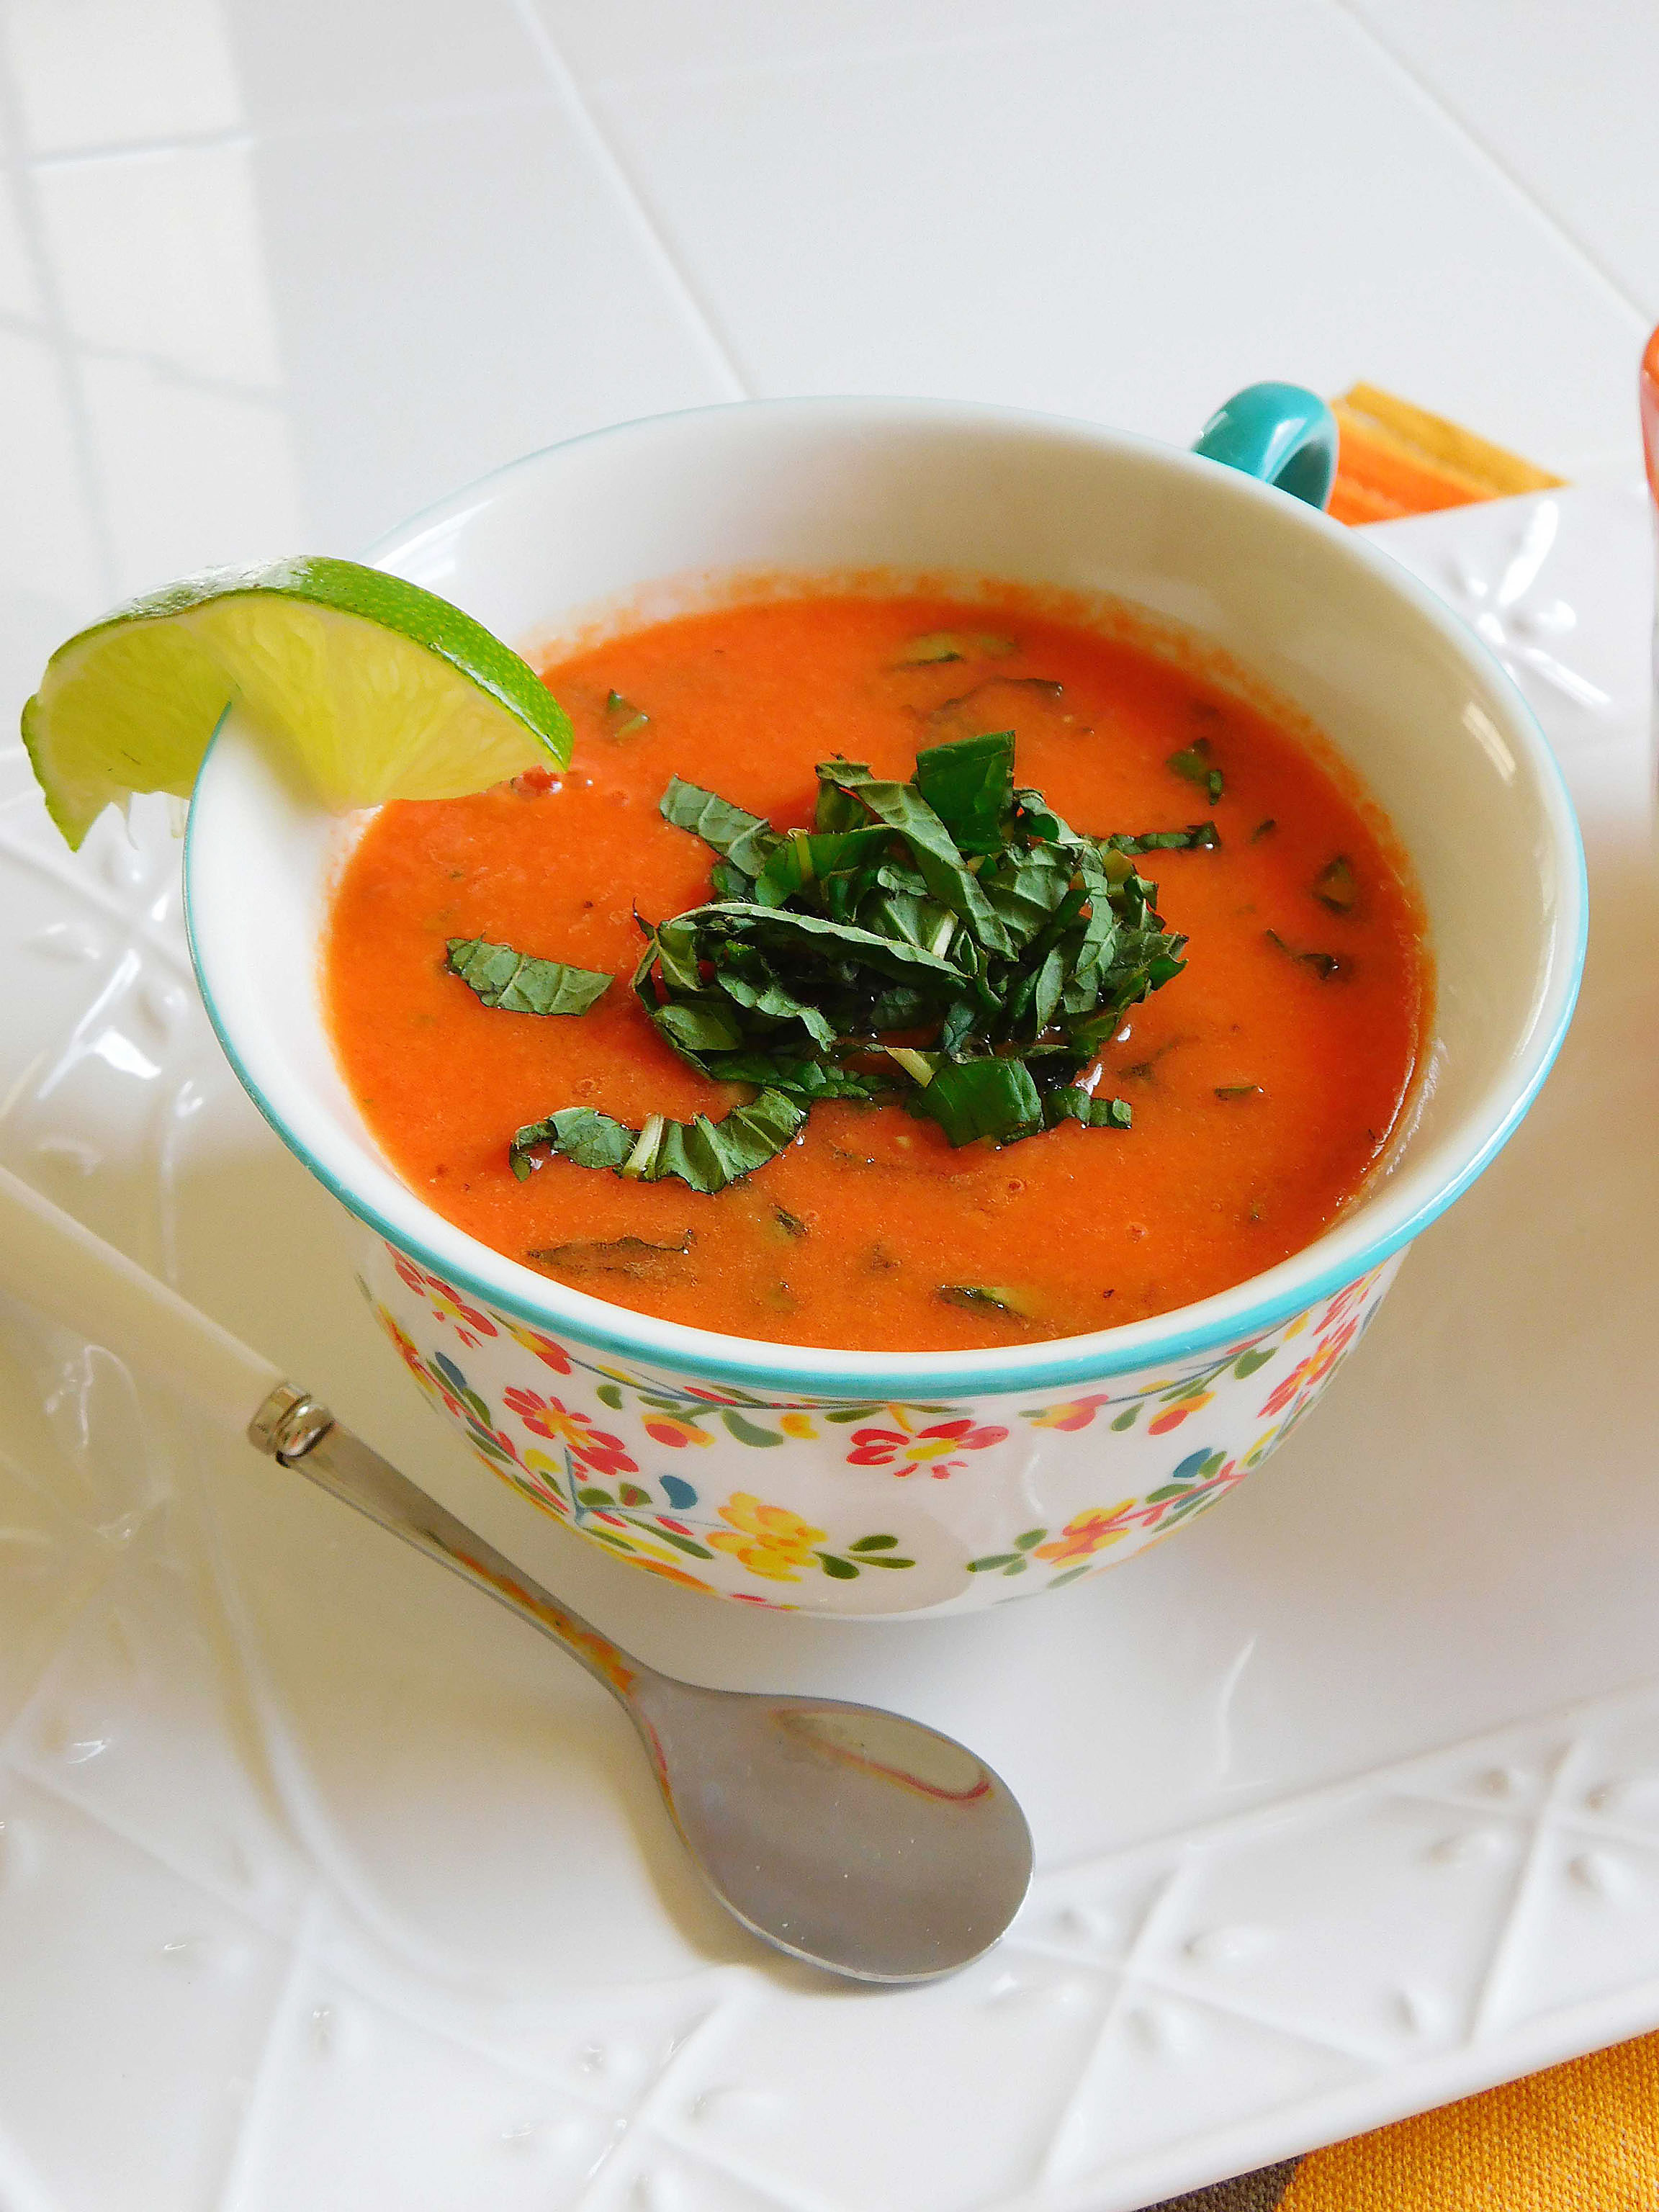 Chill out with summery cold soups | Pittsburgh Post-Gazette